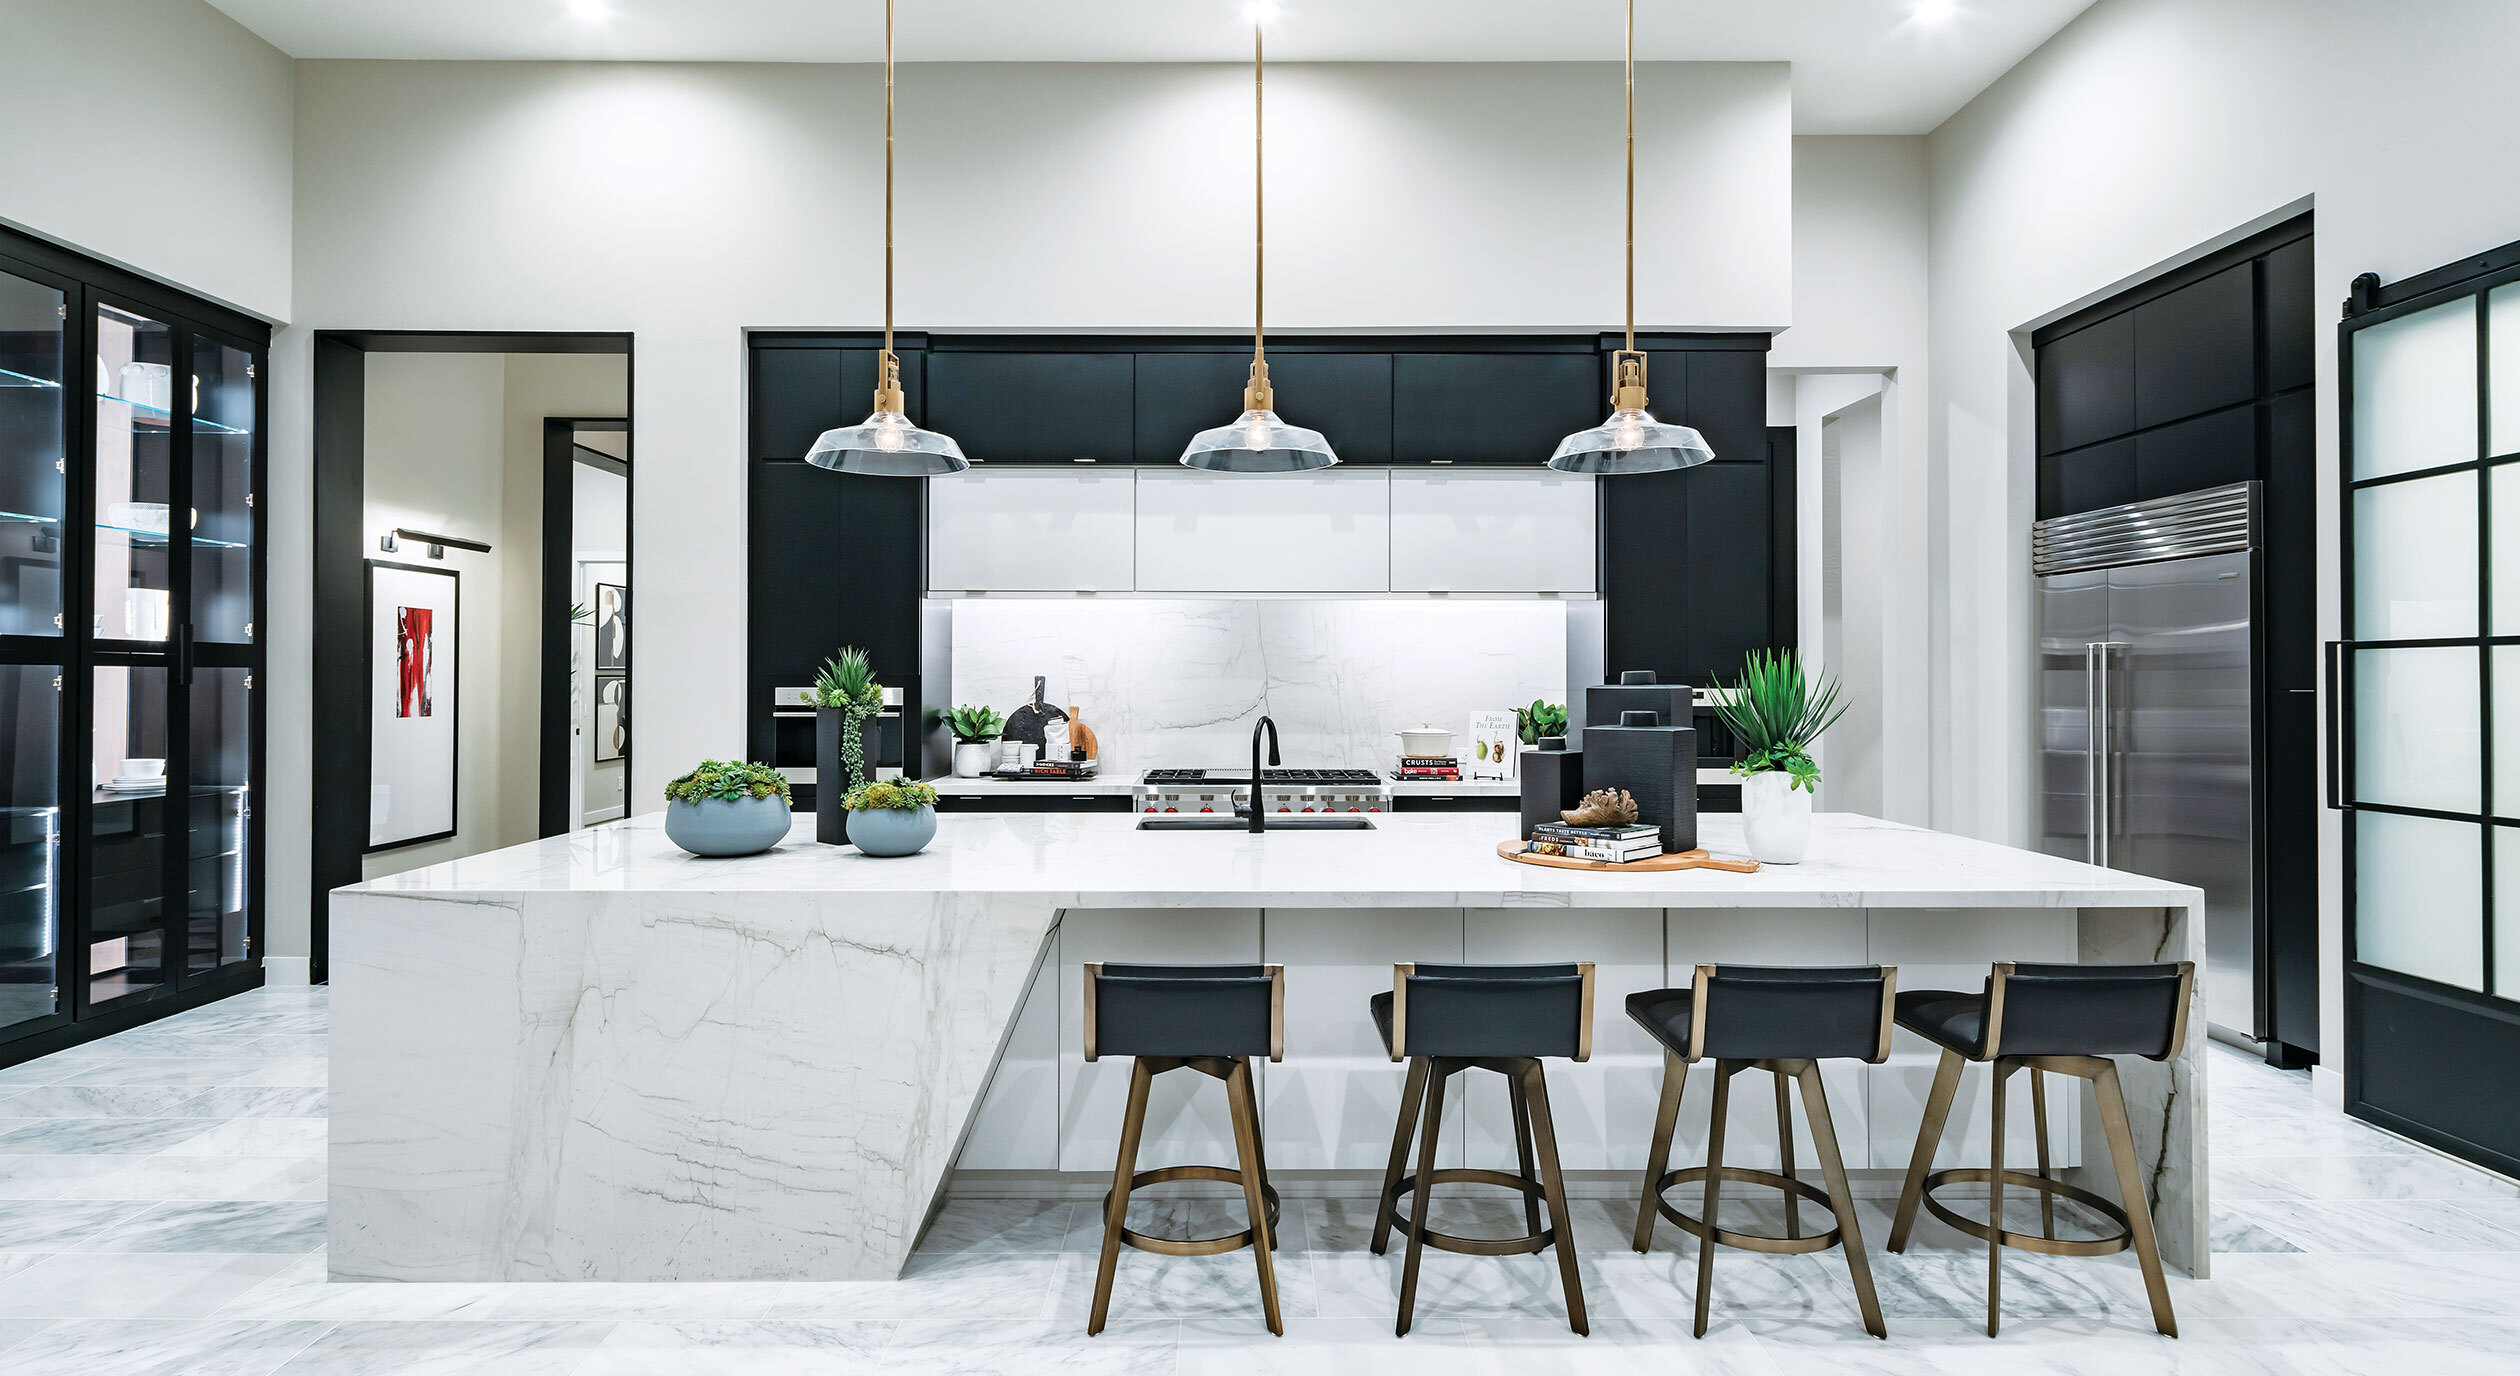 Sereno Canyon decorated model of large kitchen